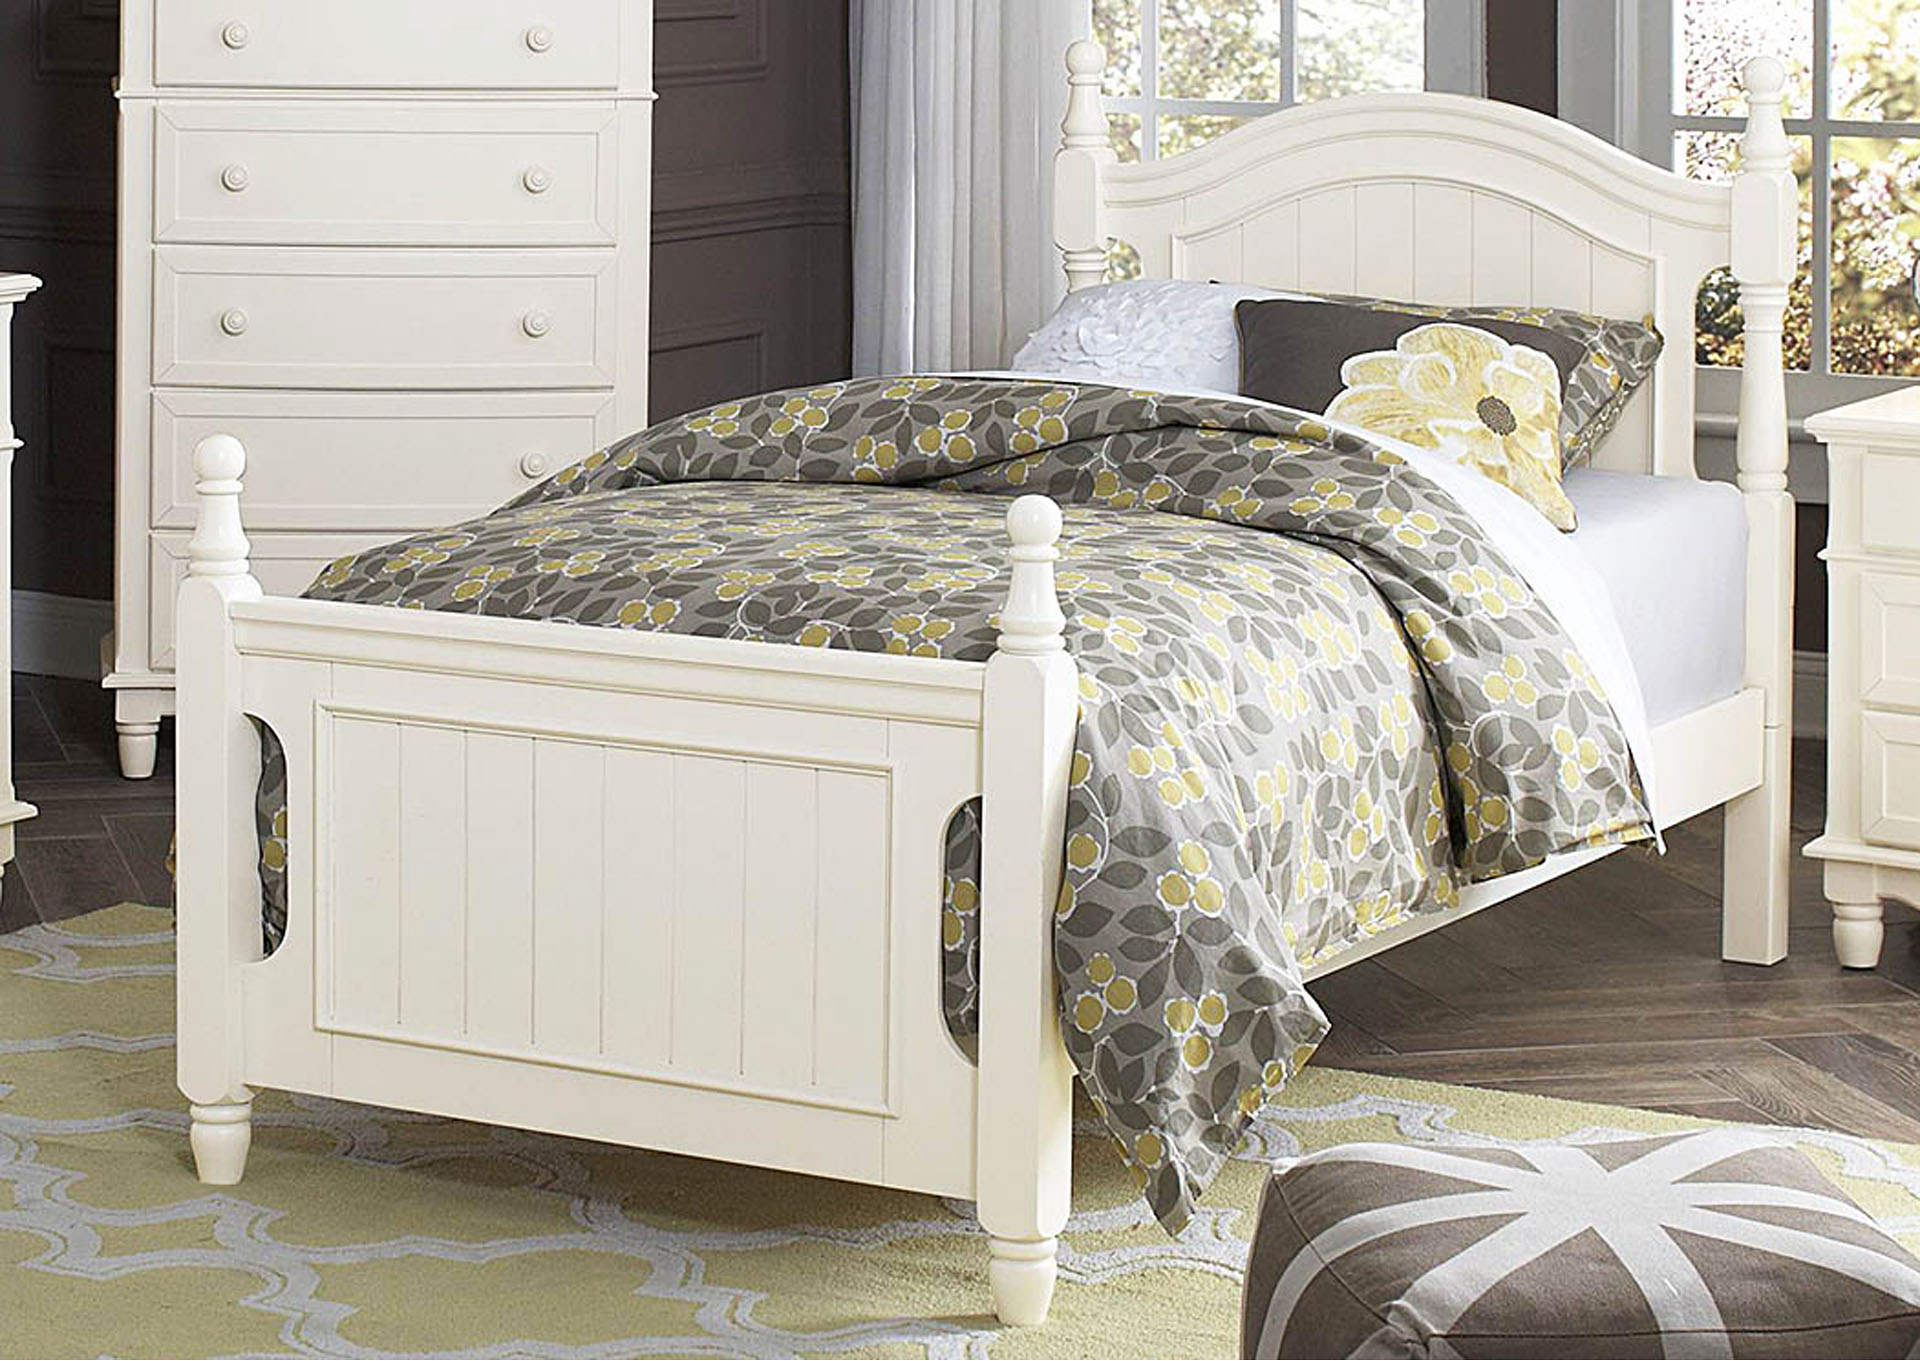 Clementine White Twin Bed,Homelegance